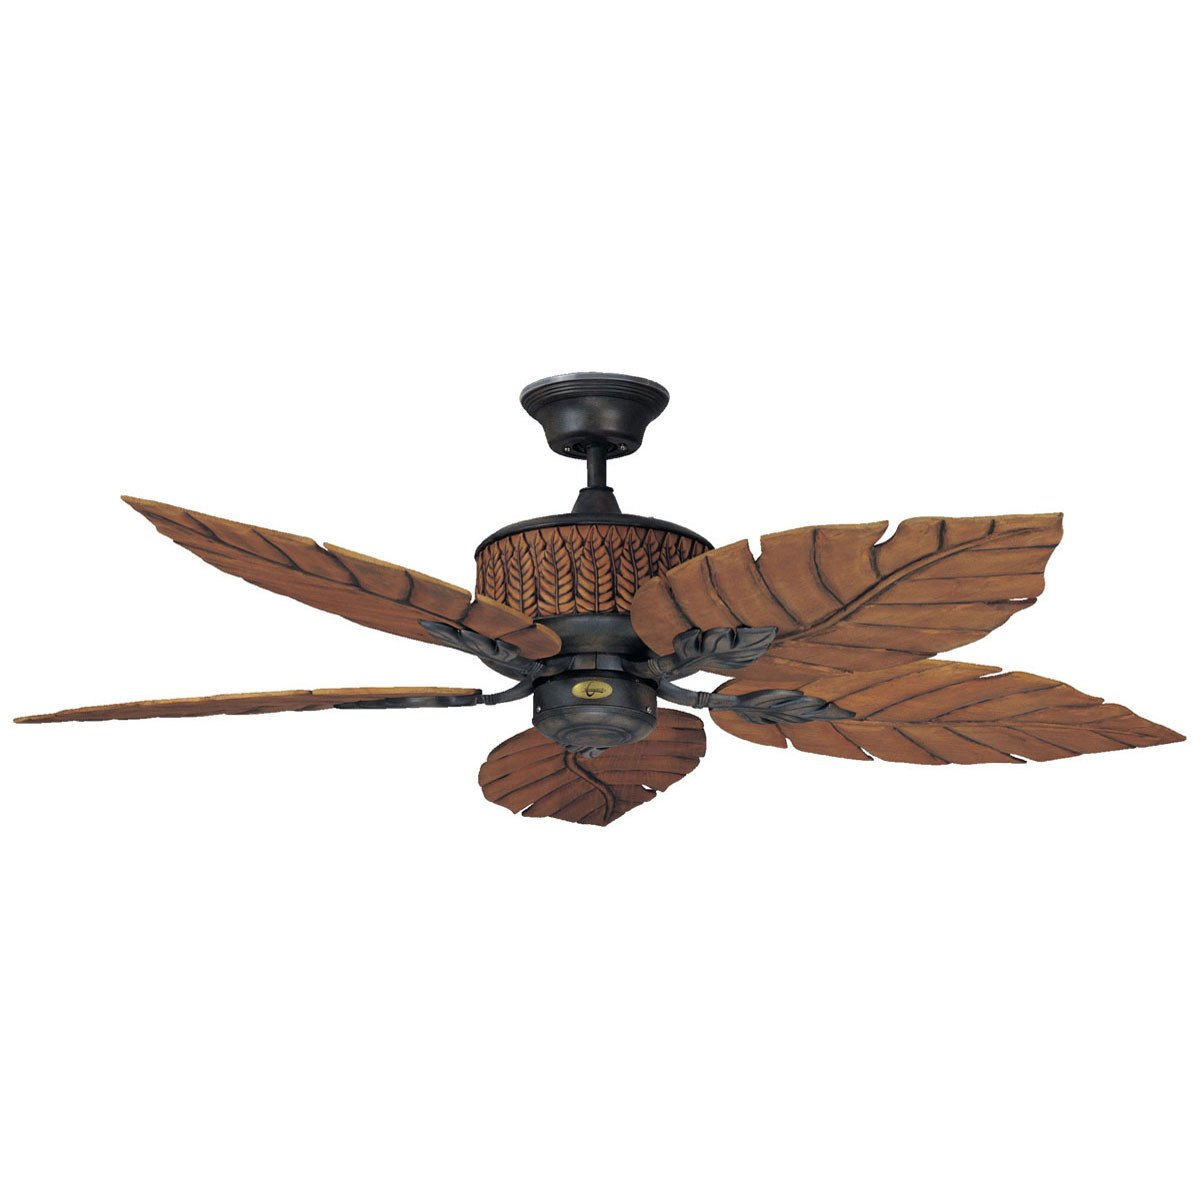 "Concord Fans 52"" Fern Leaf Breeze Rustic Iron Outdoor Ceiling Fan"